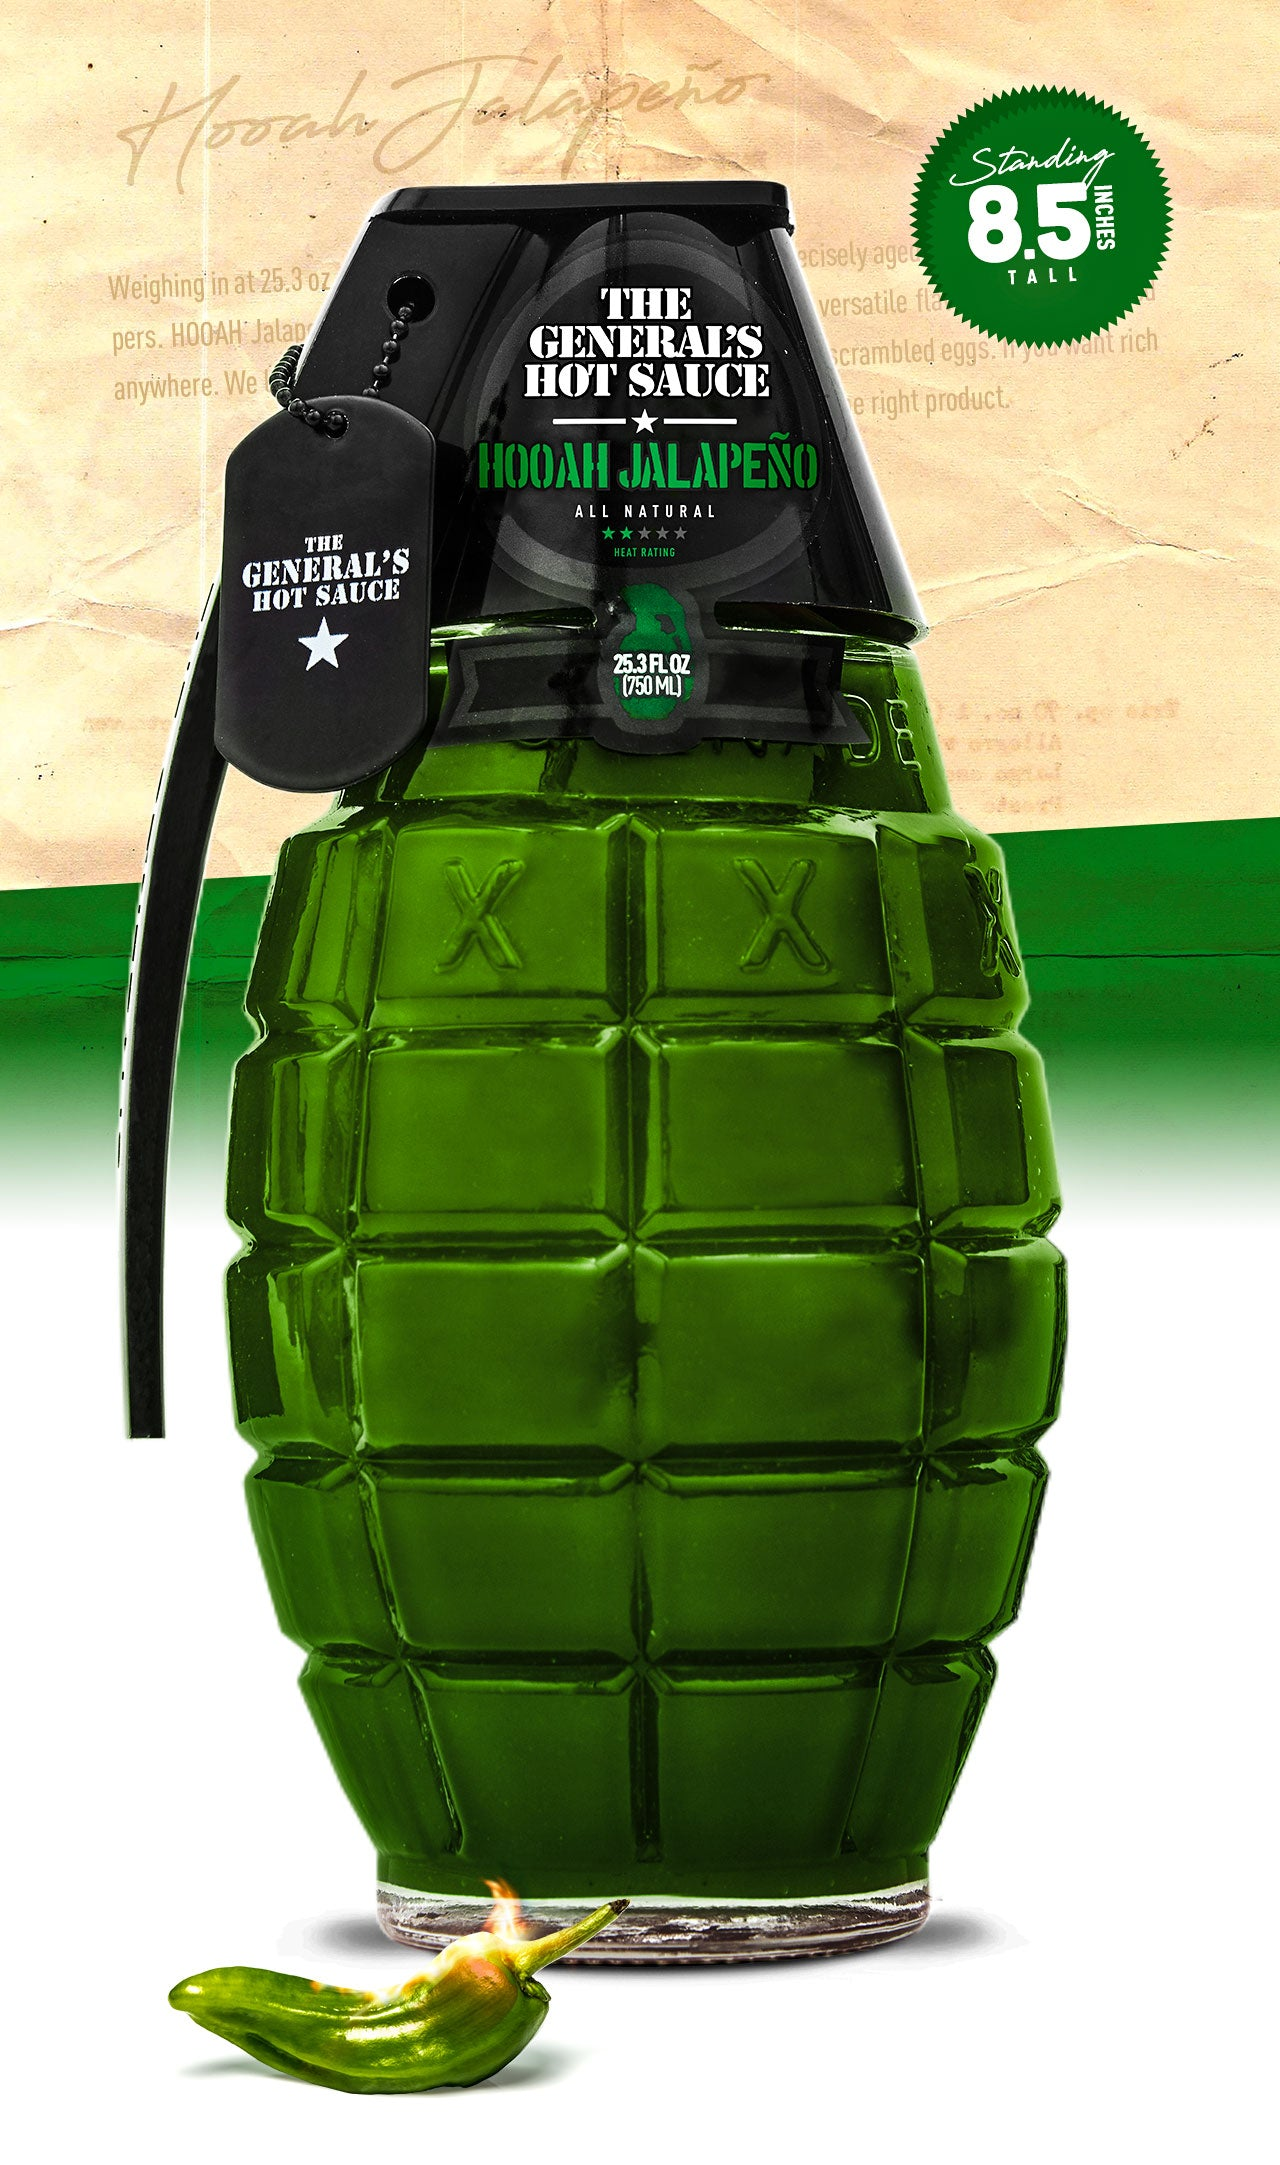 HOOAH Jalapeño big bottle - 750 ml